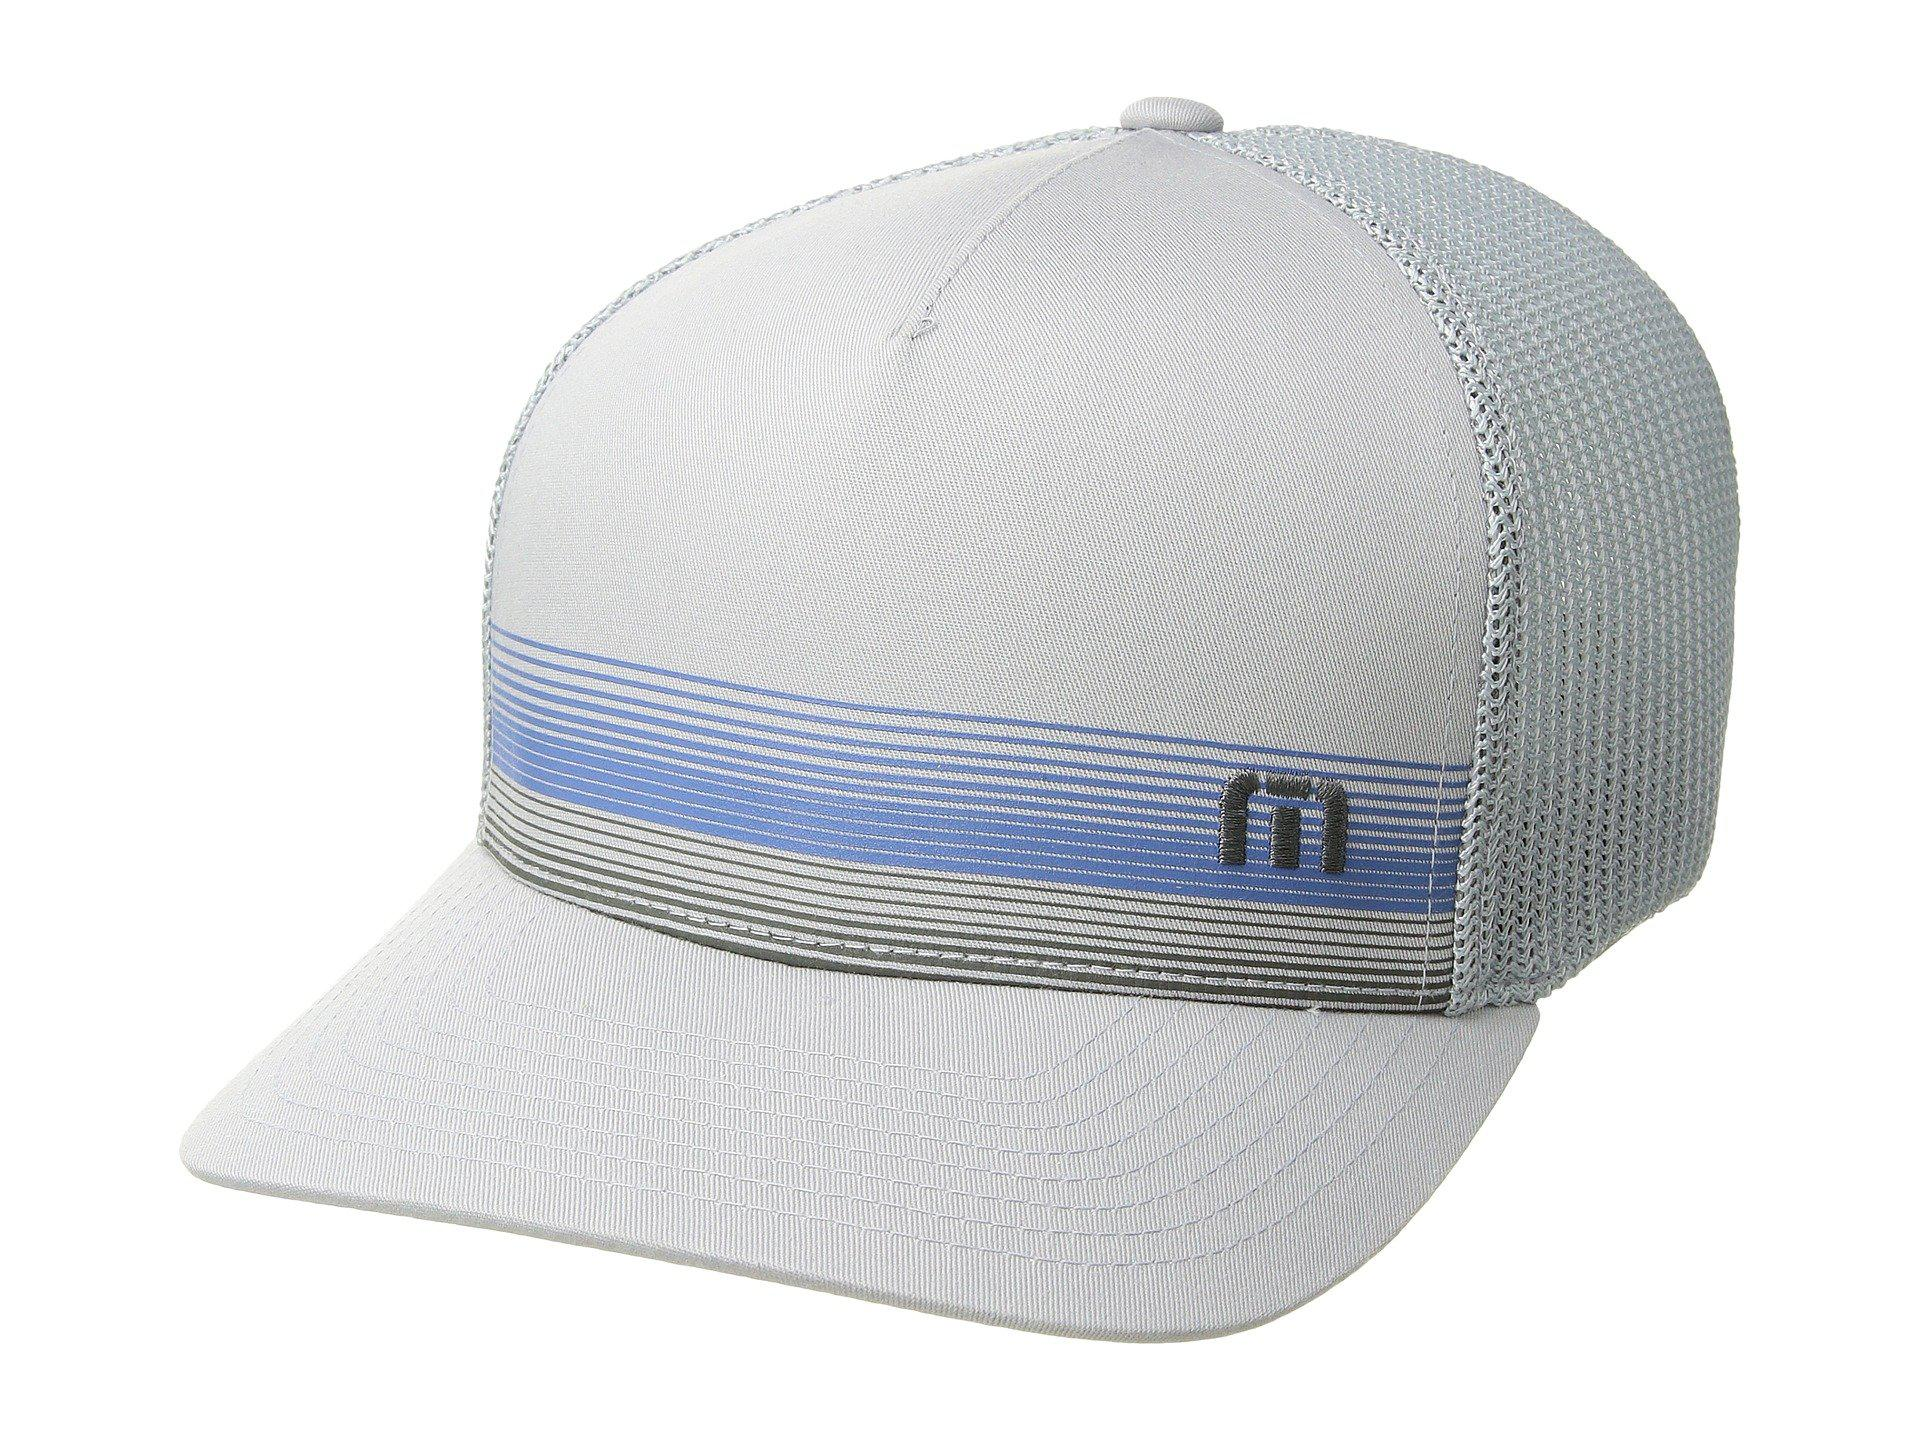 size 40 442b6 26676 ... flexfit cap bce1b 549ad  free shipping promo code for lyst travis mathew  braxton alloy caps for men a7716 ad96a 9cceb